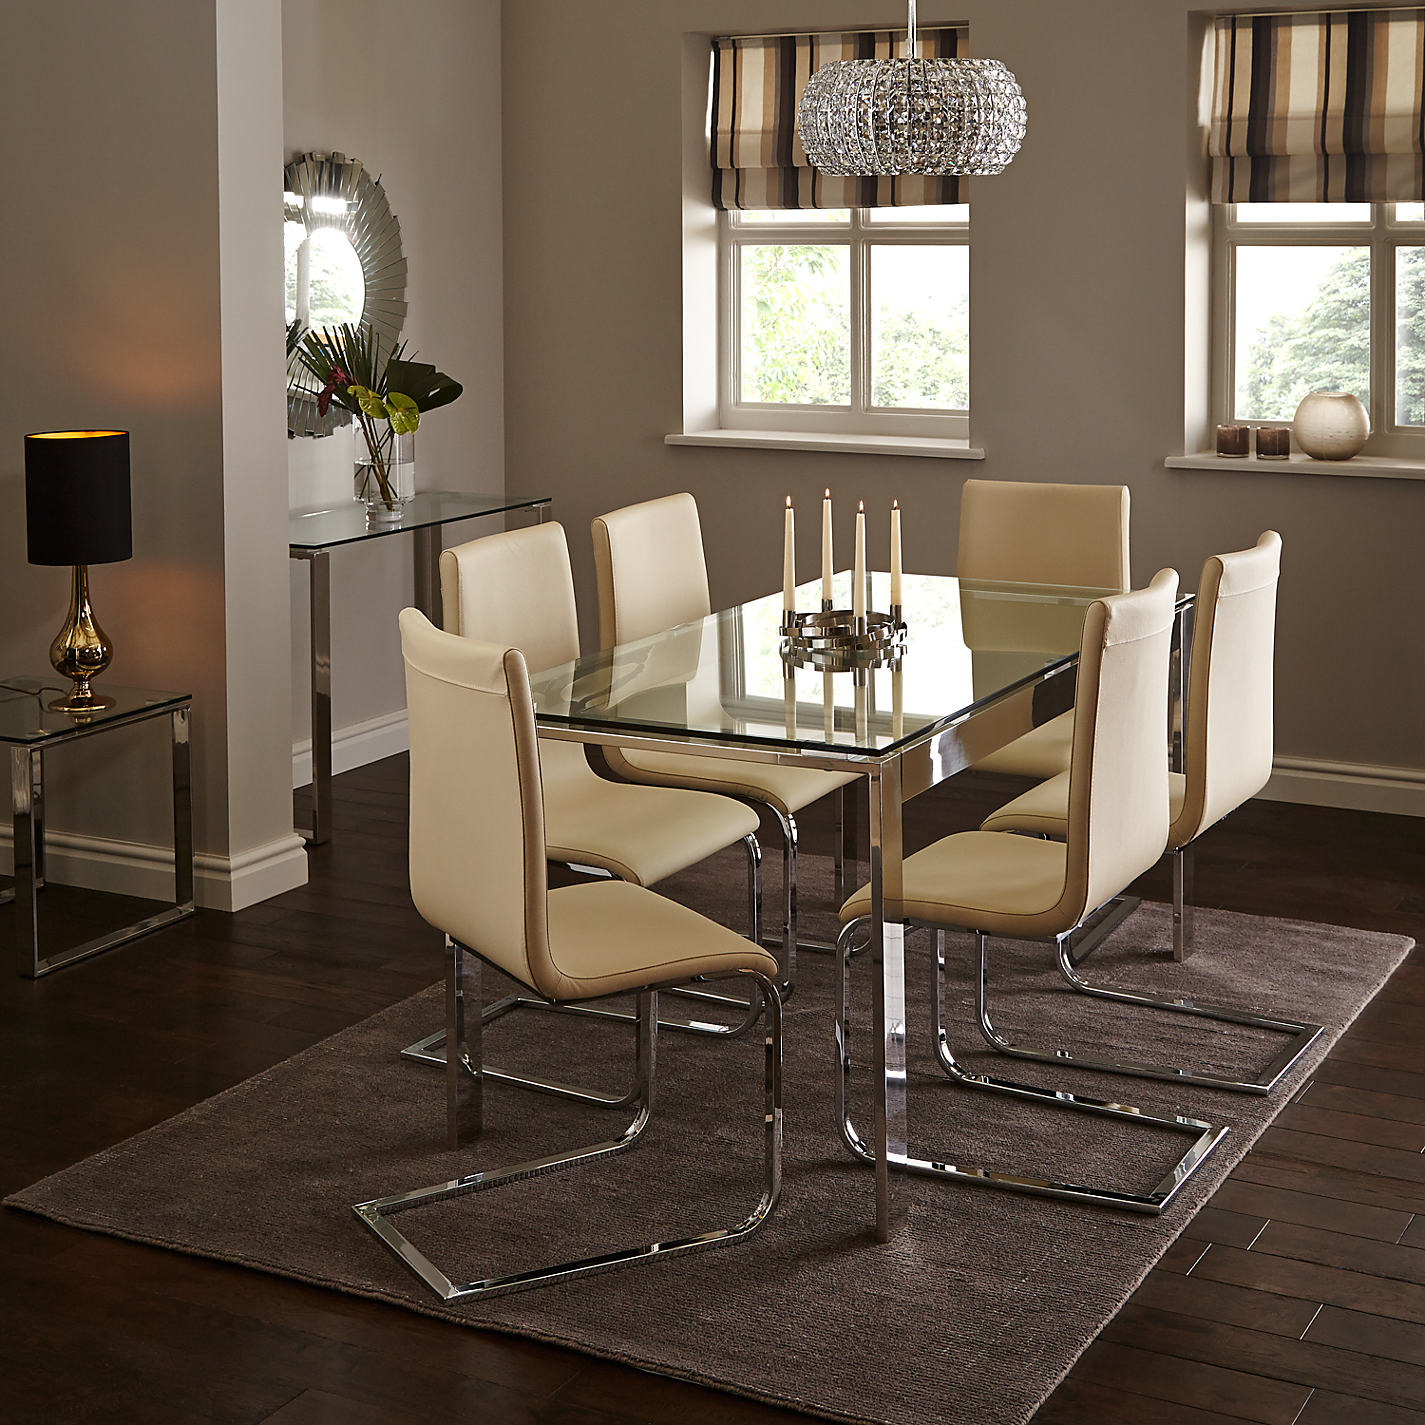 Glass dining table and chairs john lewis john lewis for Dining room john lewis